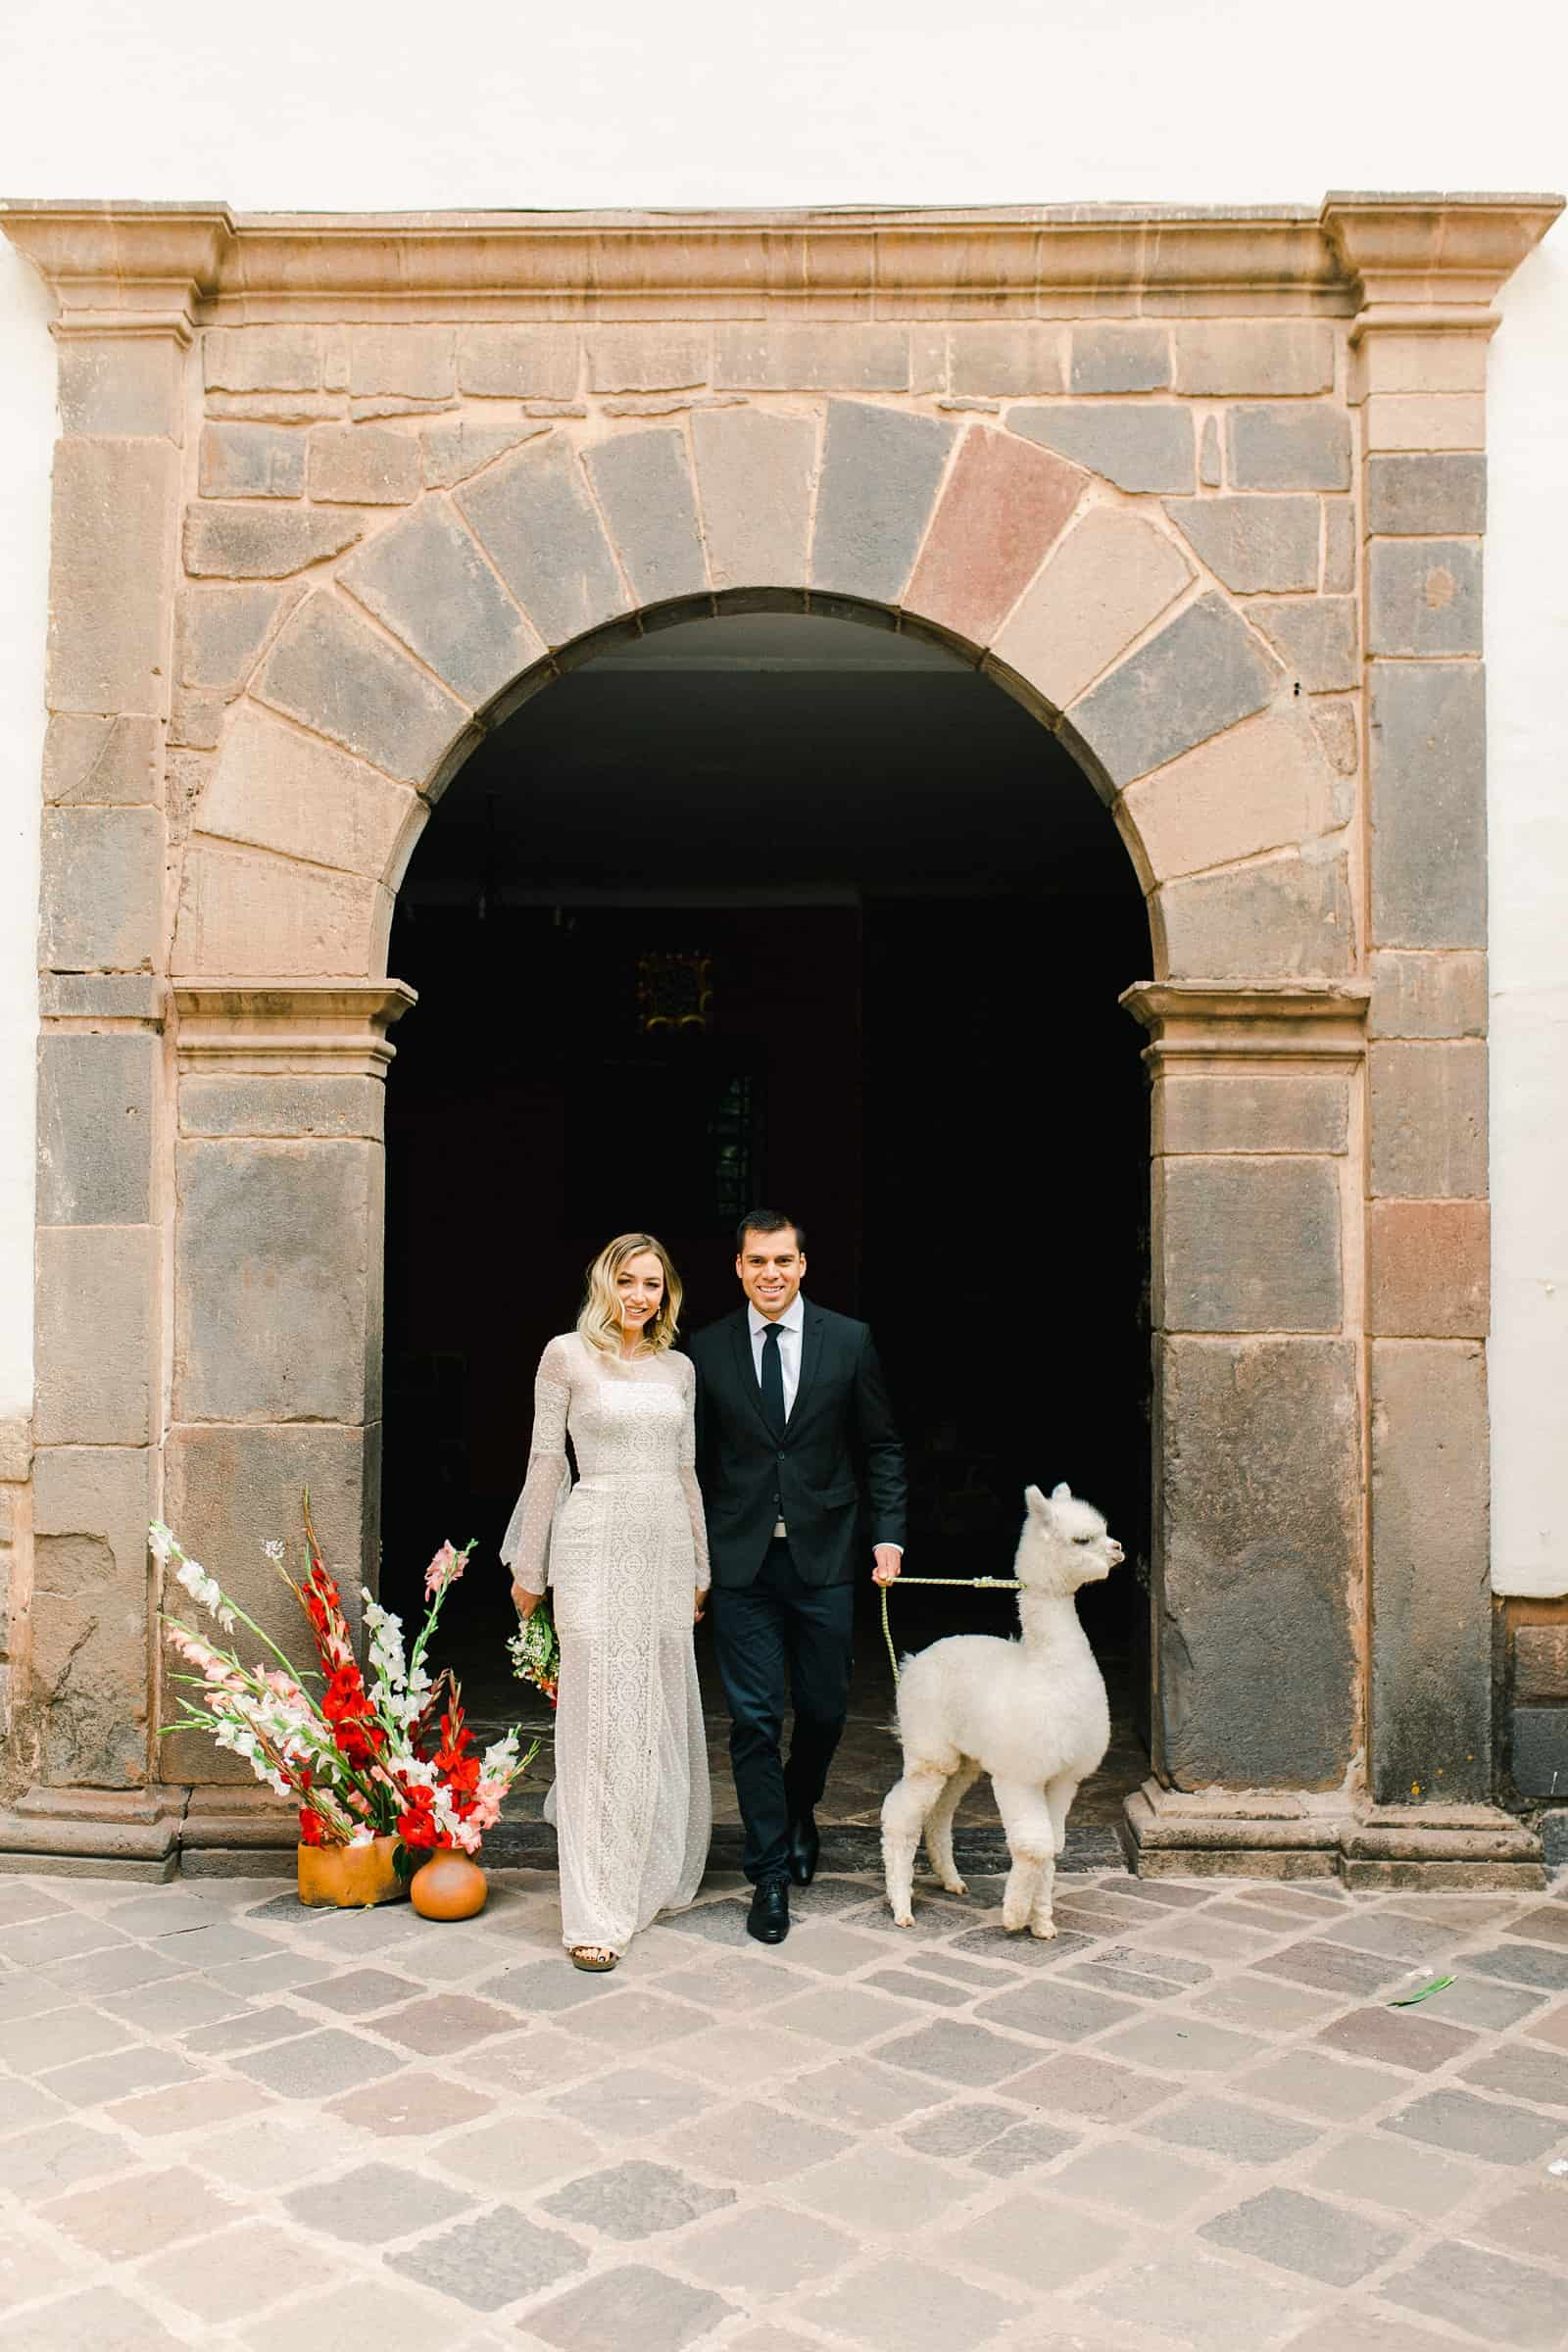 Cusco Peru Destination Wedding, travel wedding photography, Plaza de Armas red flowers boho wedding, bride and groom with white alpaca llama, red flowers bouquet